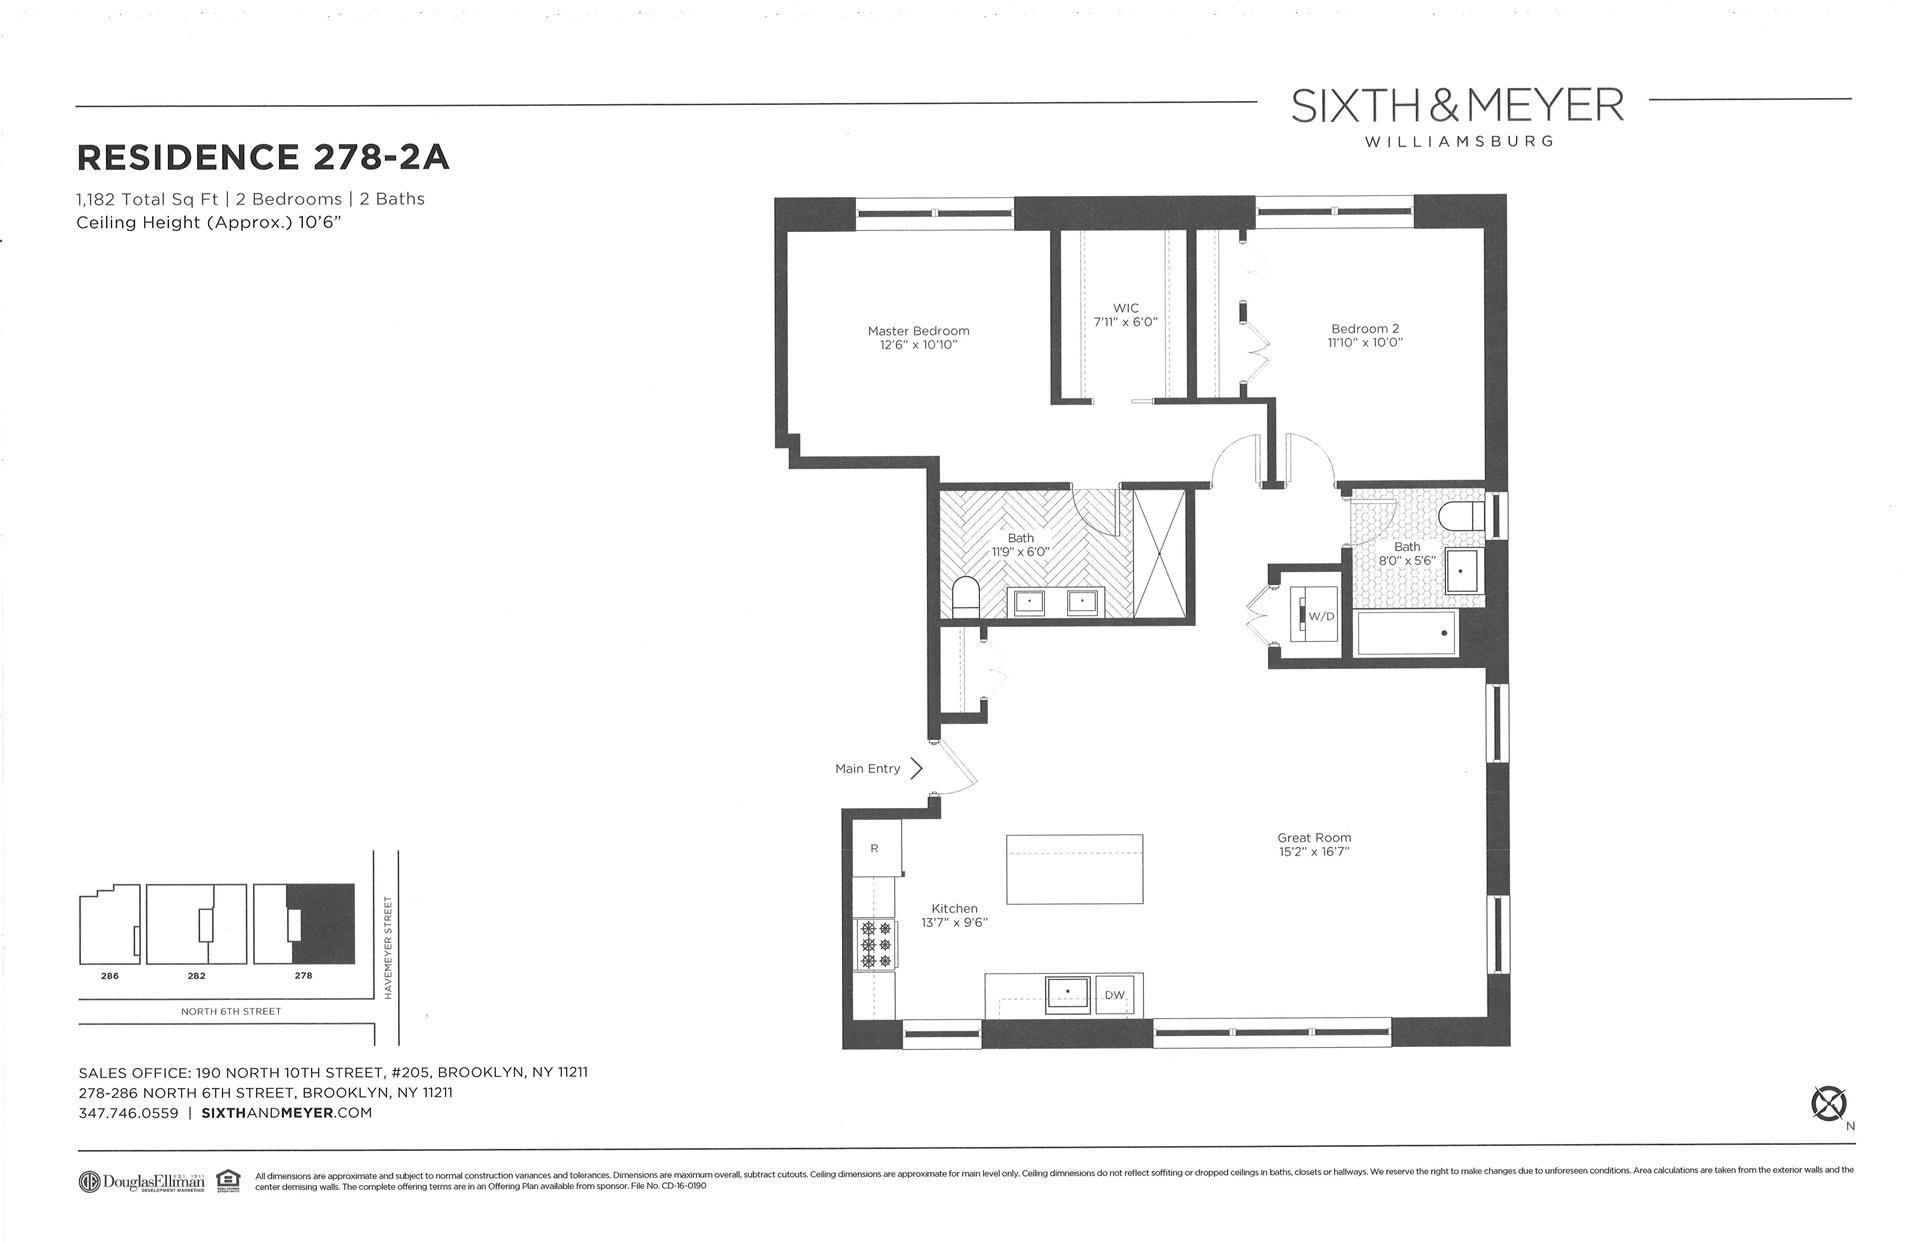 Floor plan of Sixth & Meyer, 278-286 North 6th St, 278/2A - Williamsburg, New York